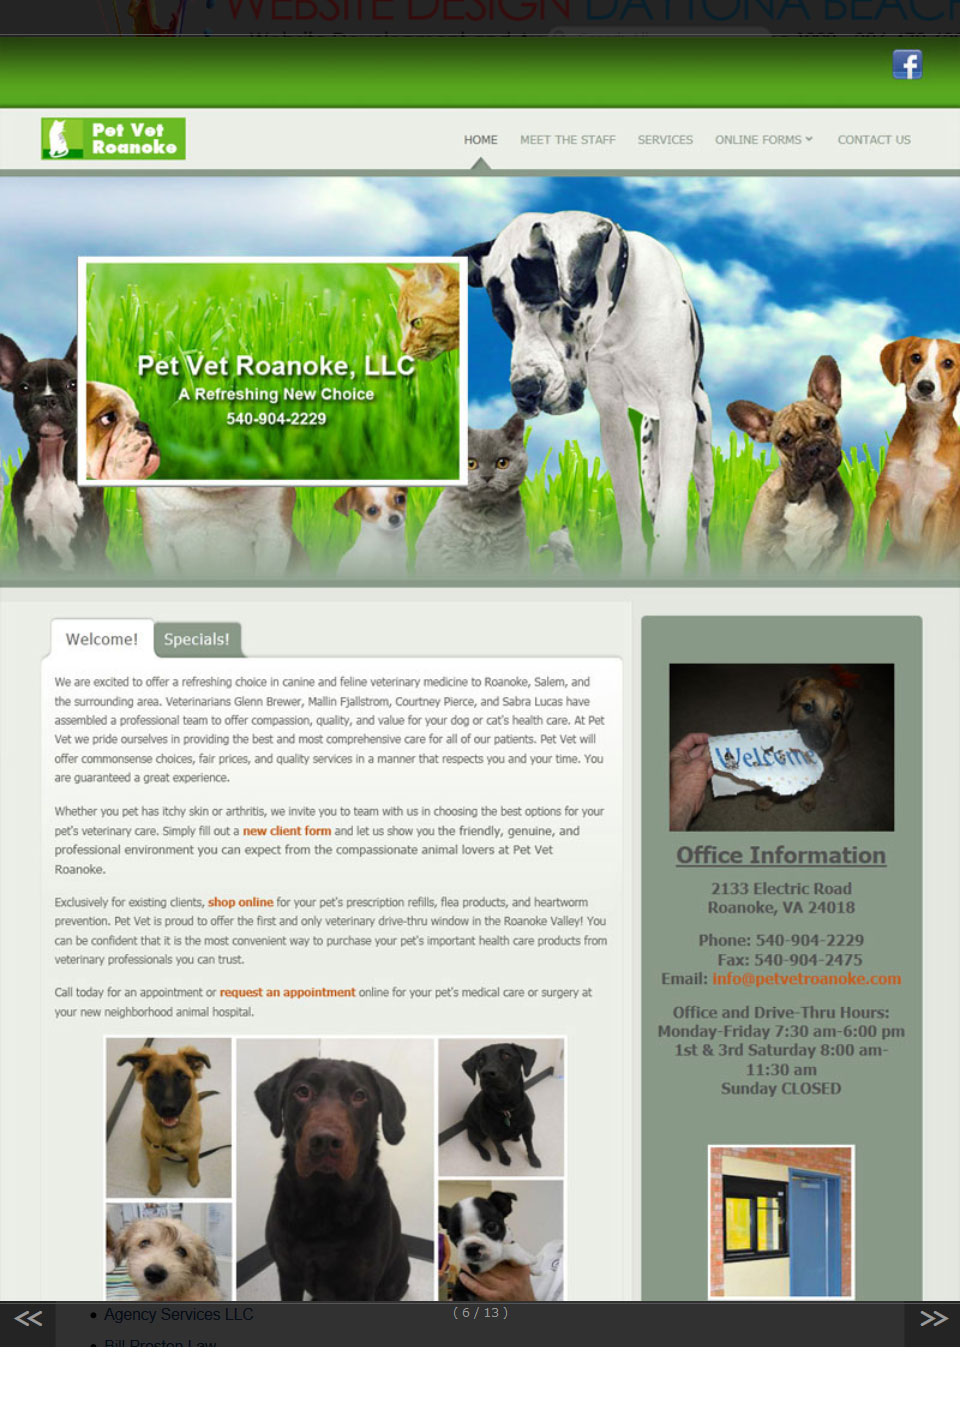 Pet Vet Roanoke Website Design